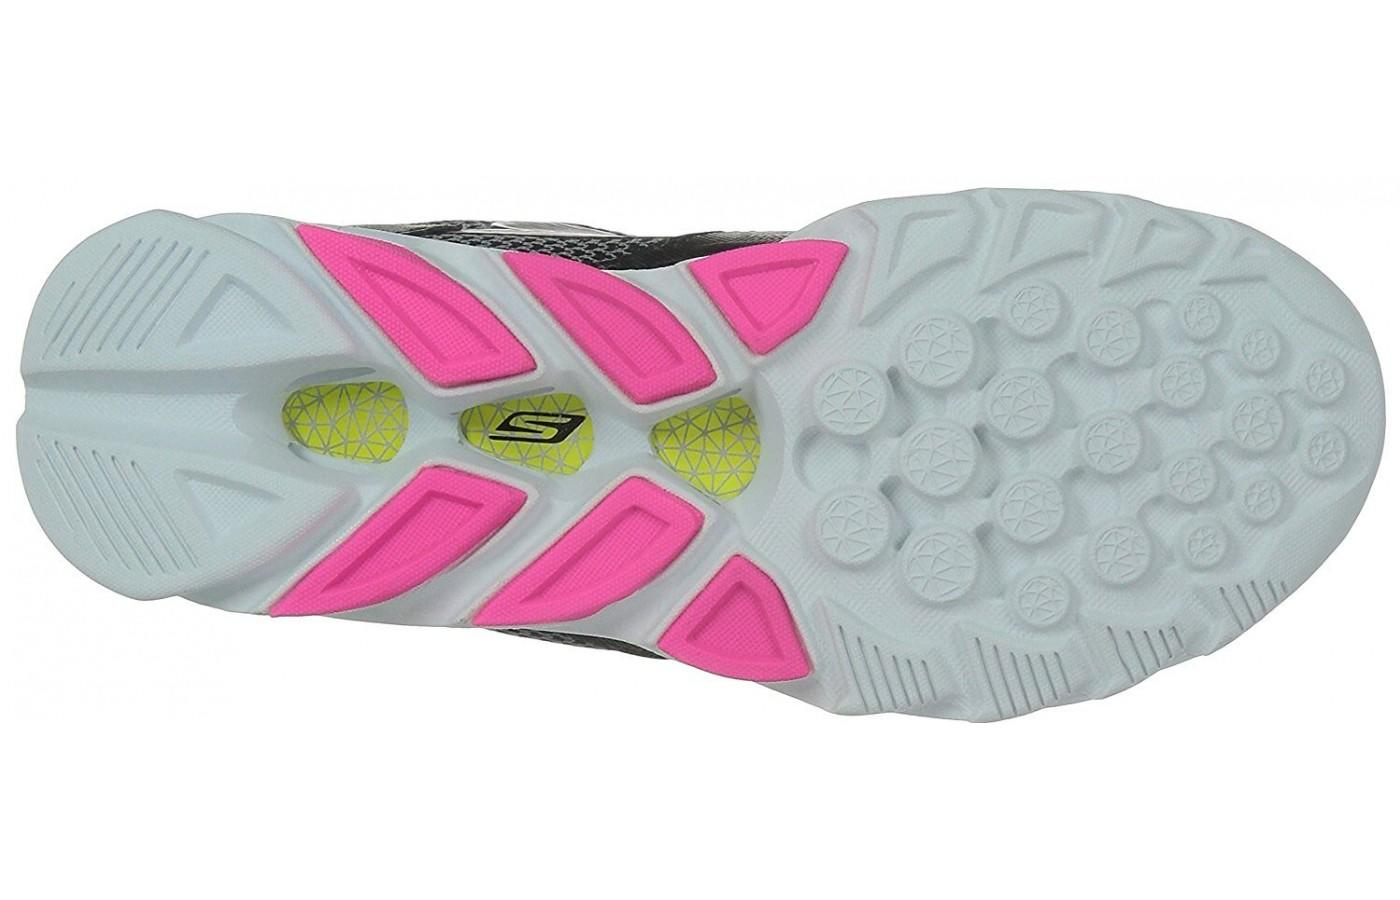 Skechers GoRun Vortex features a carbon rubber outsole